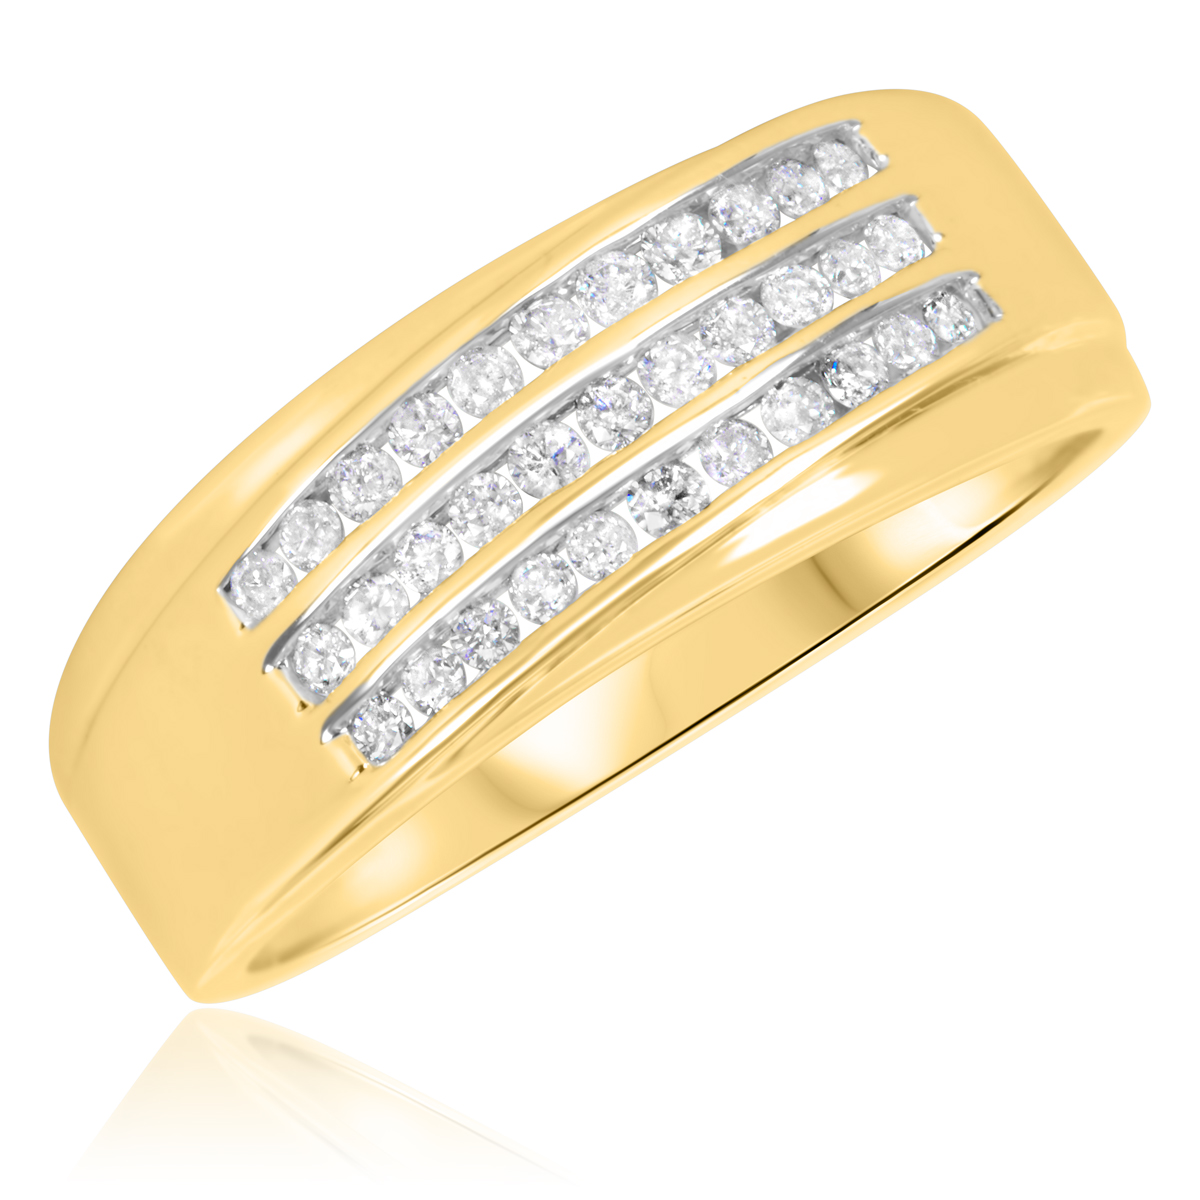 1/2 Carat T.W. Round Cut Diamond Men's Wedding Band 10K Yellow Gold- Size 8